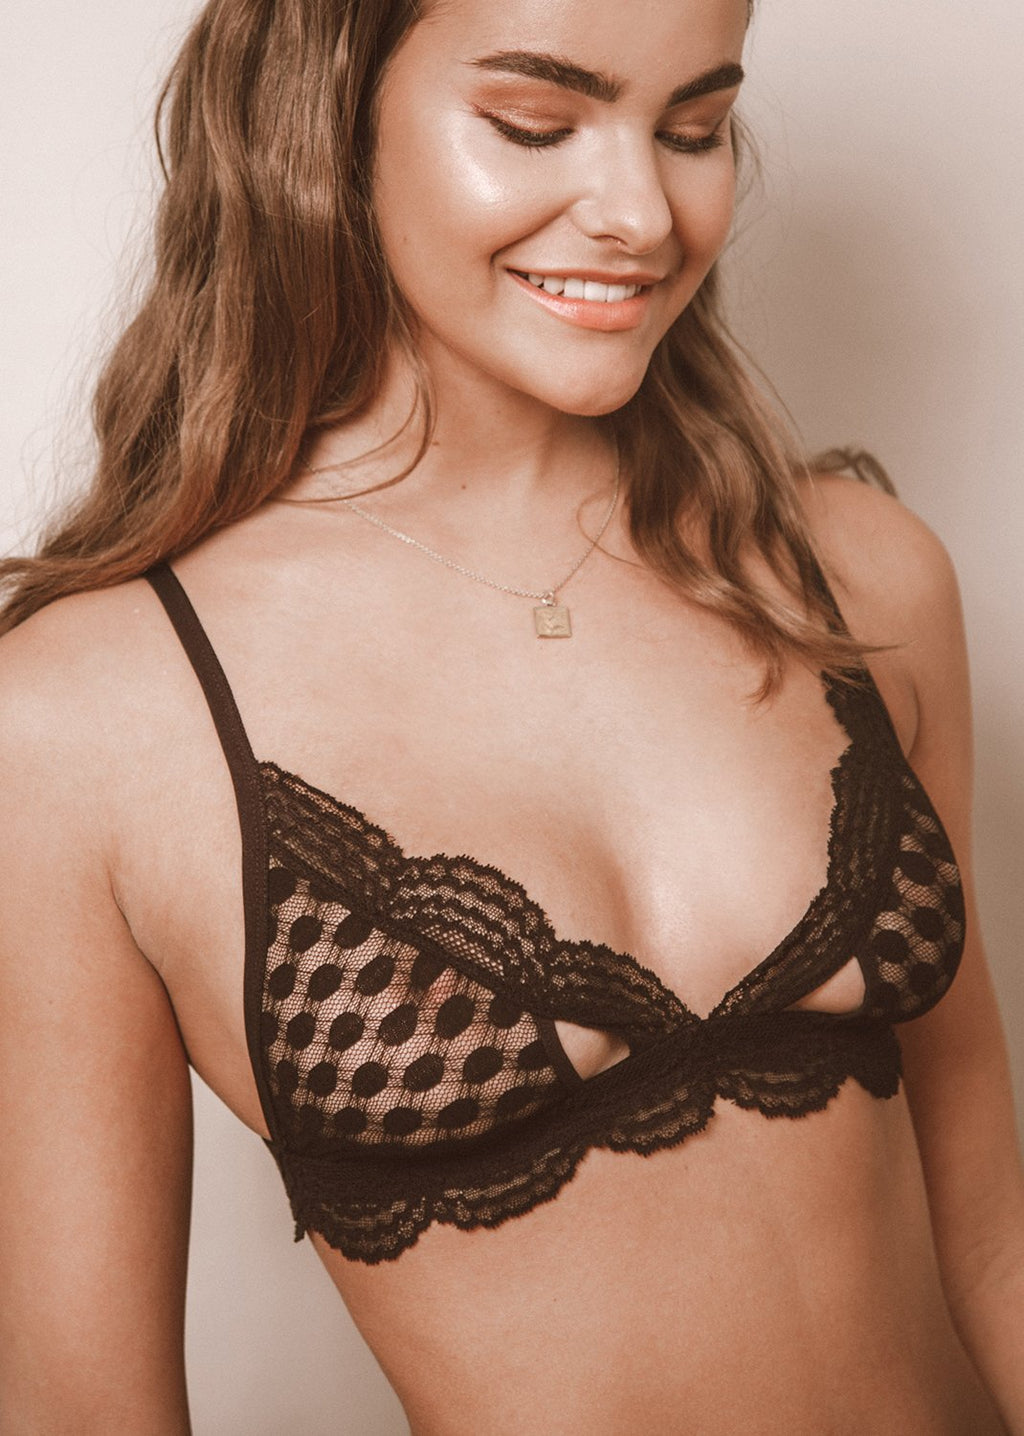 Happiness Comes In Waves Bra - LEONESSA Lingerie